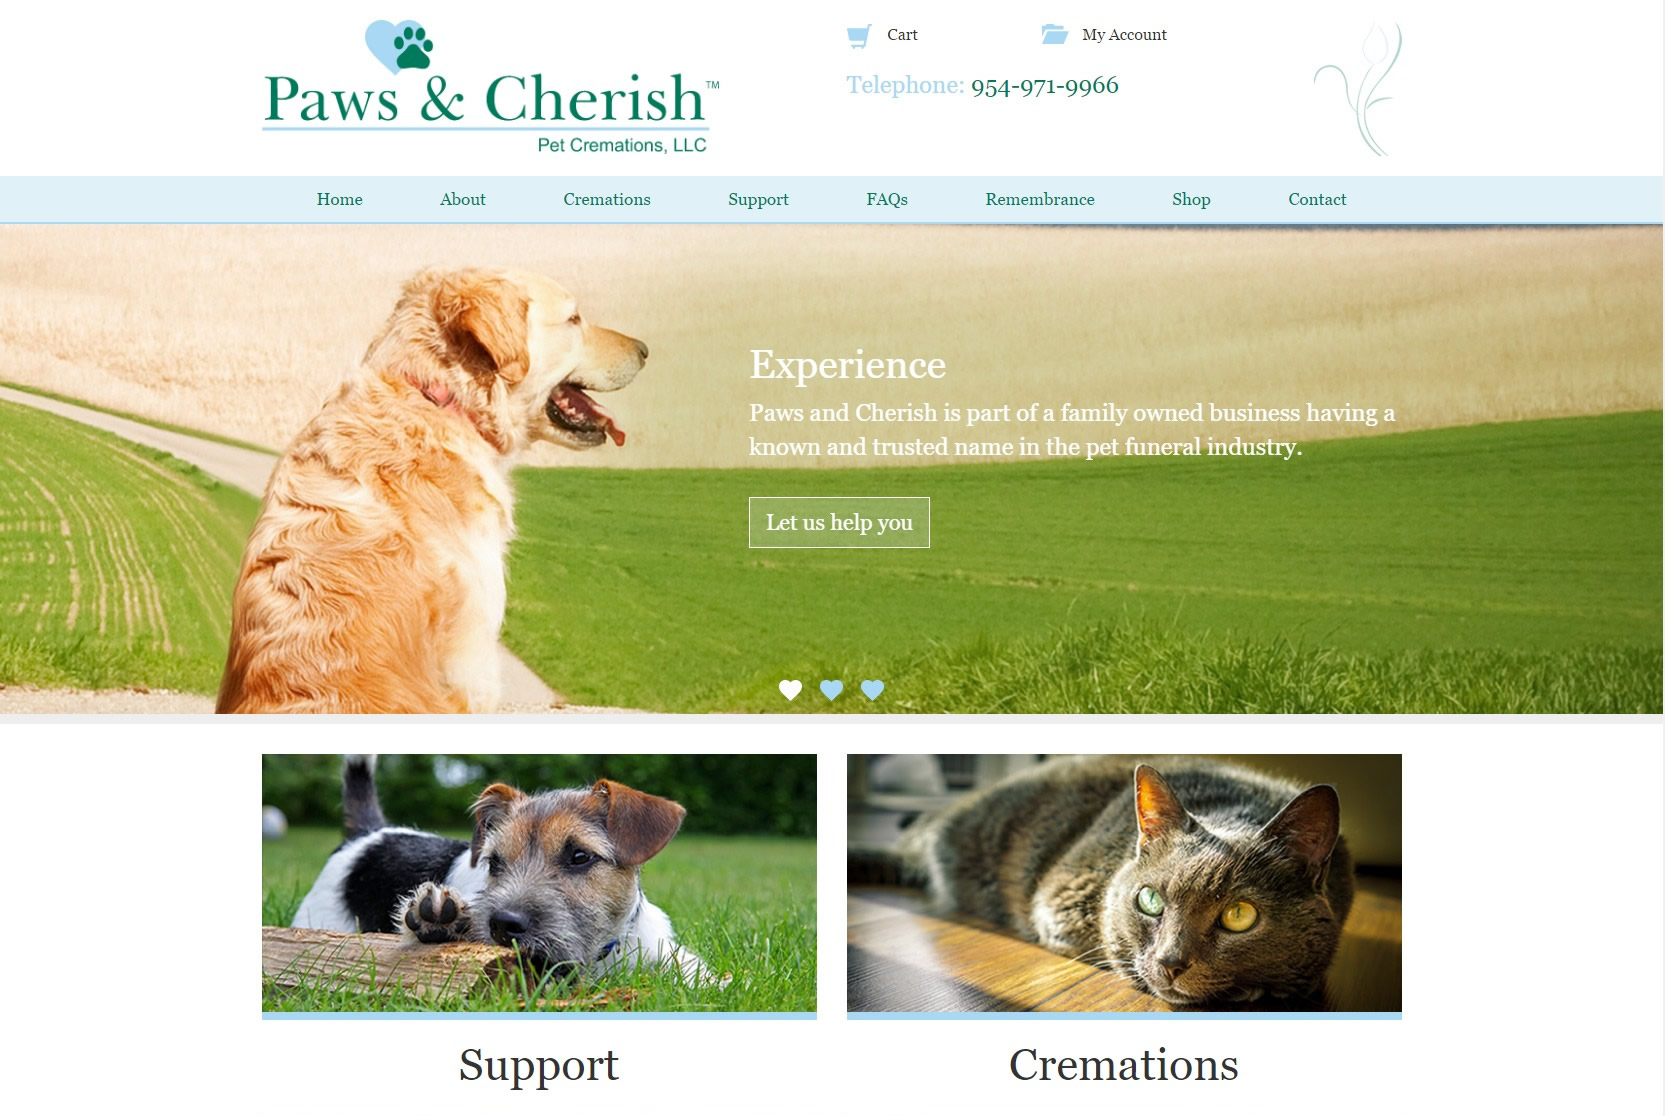 A trusted name in the pet funeral industry based in the US with affiliates in the UK.